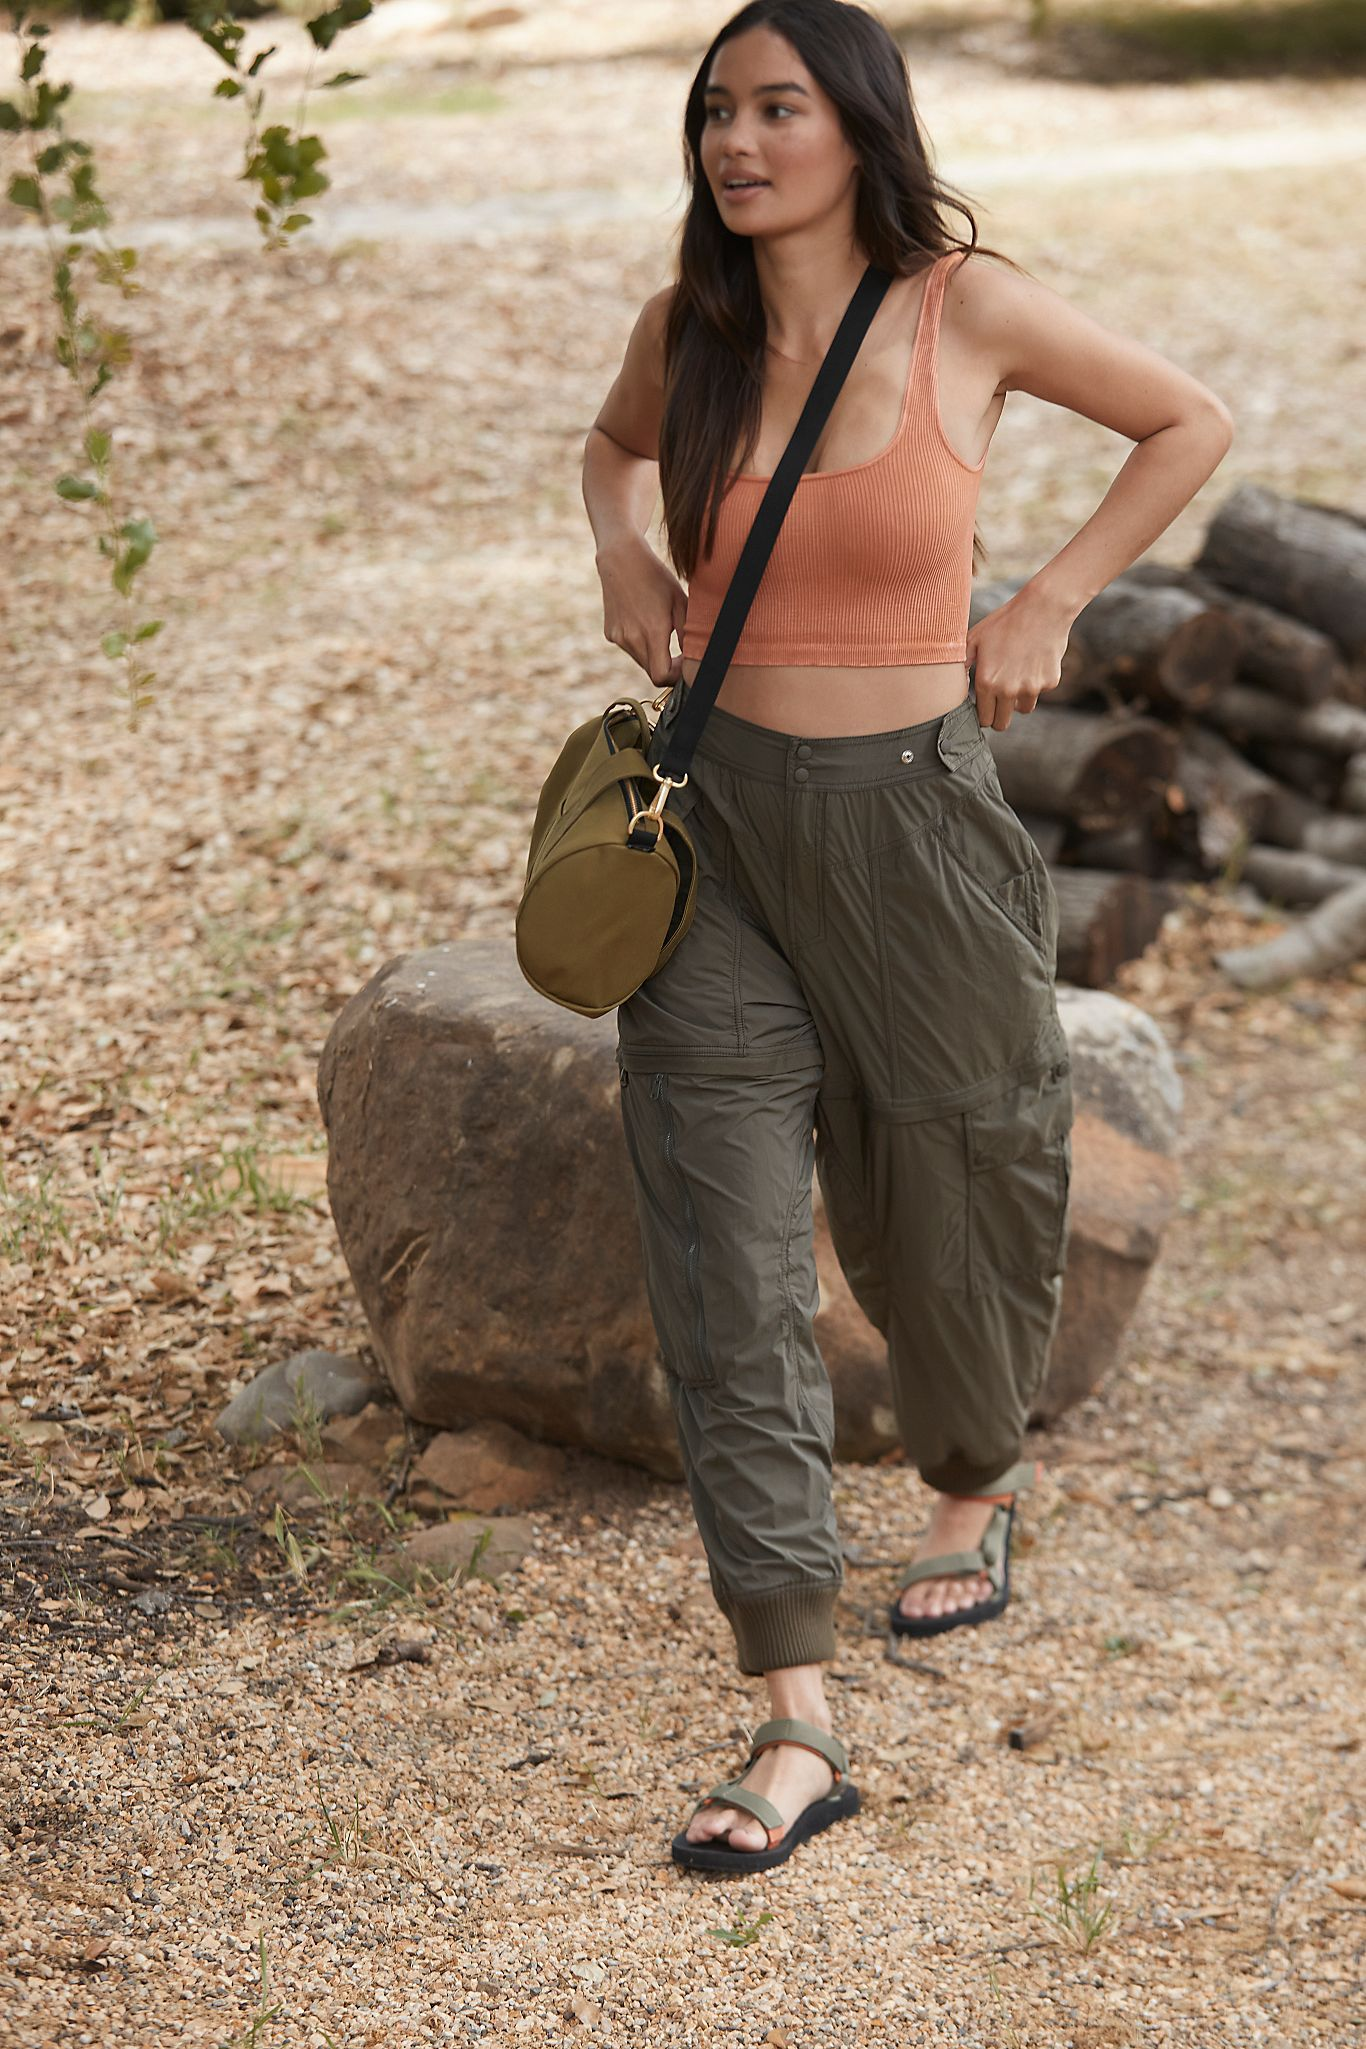 Take Off Packable Pants | Hiking outfit women, Camping ...